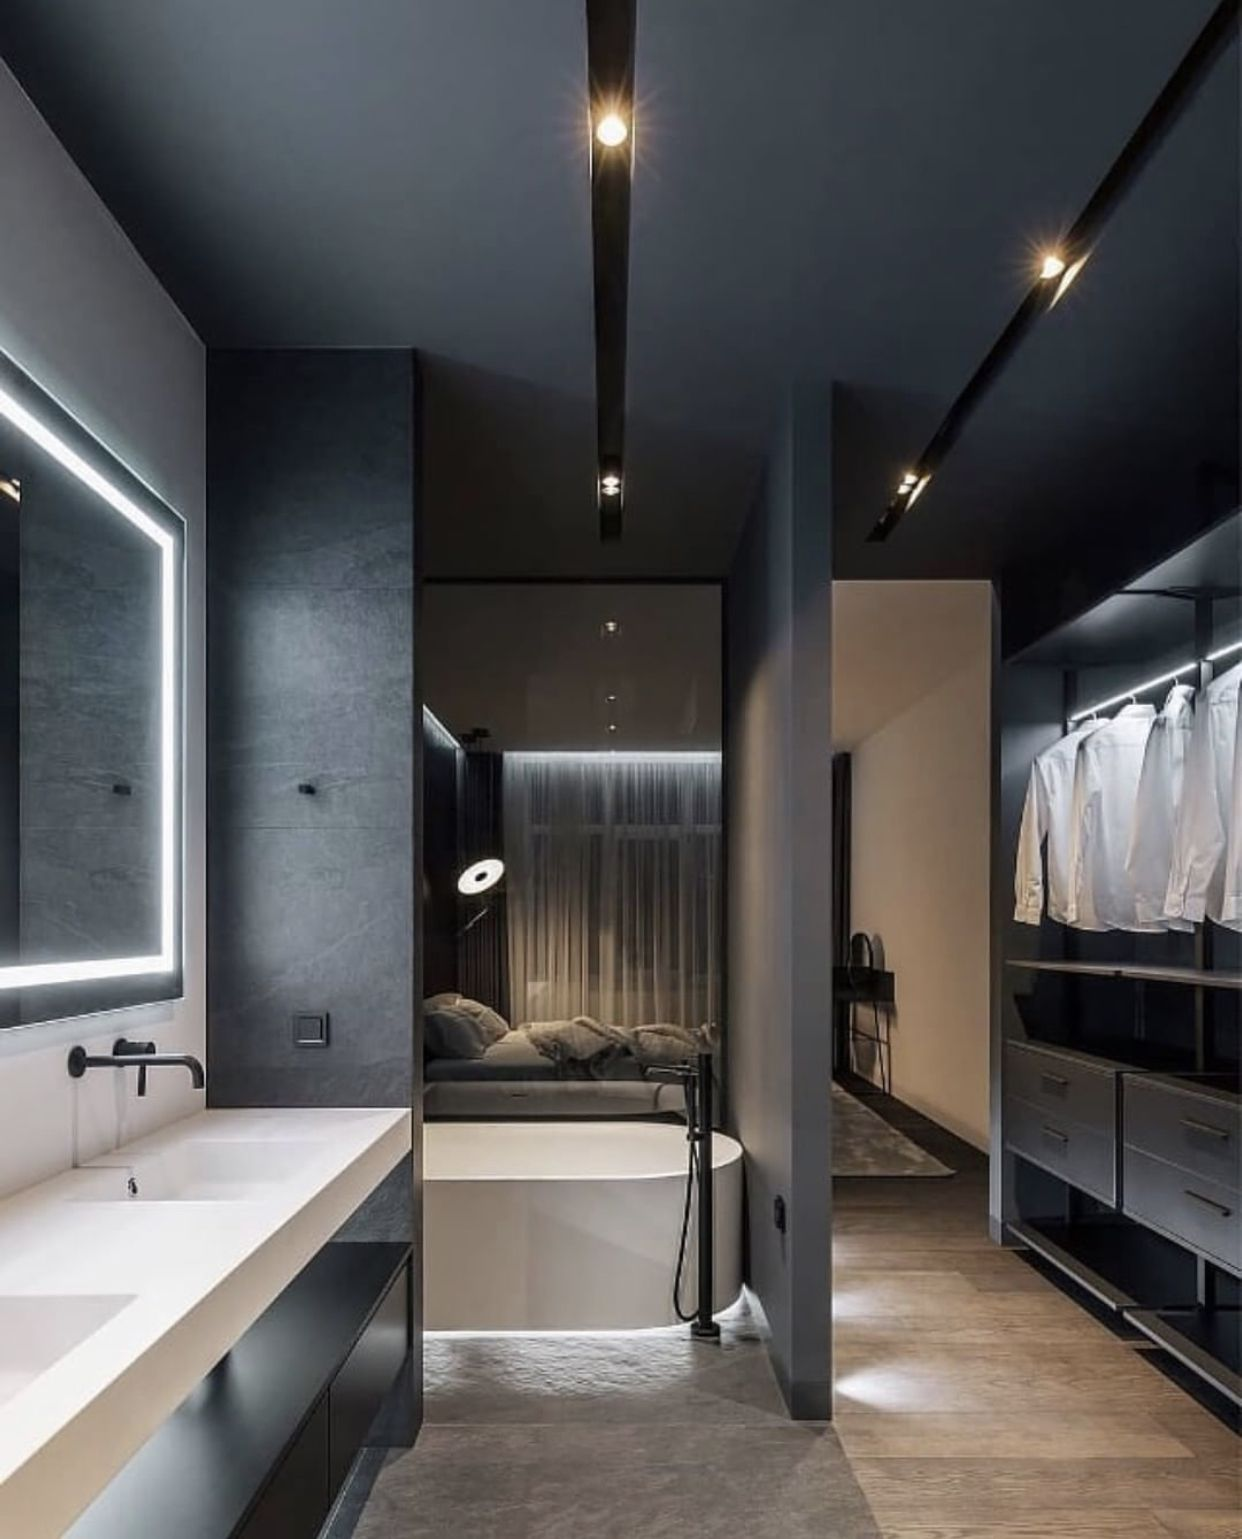 Pin By Kevin Apana On Mood Board Hotel Bathroom Design Toilet